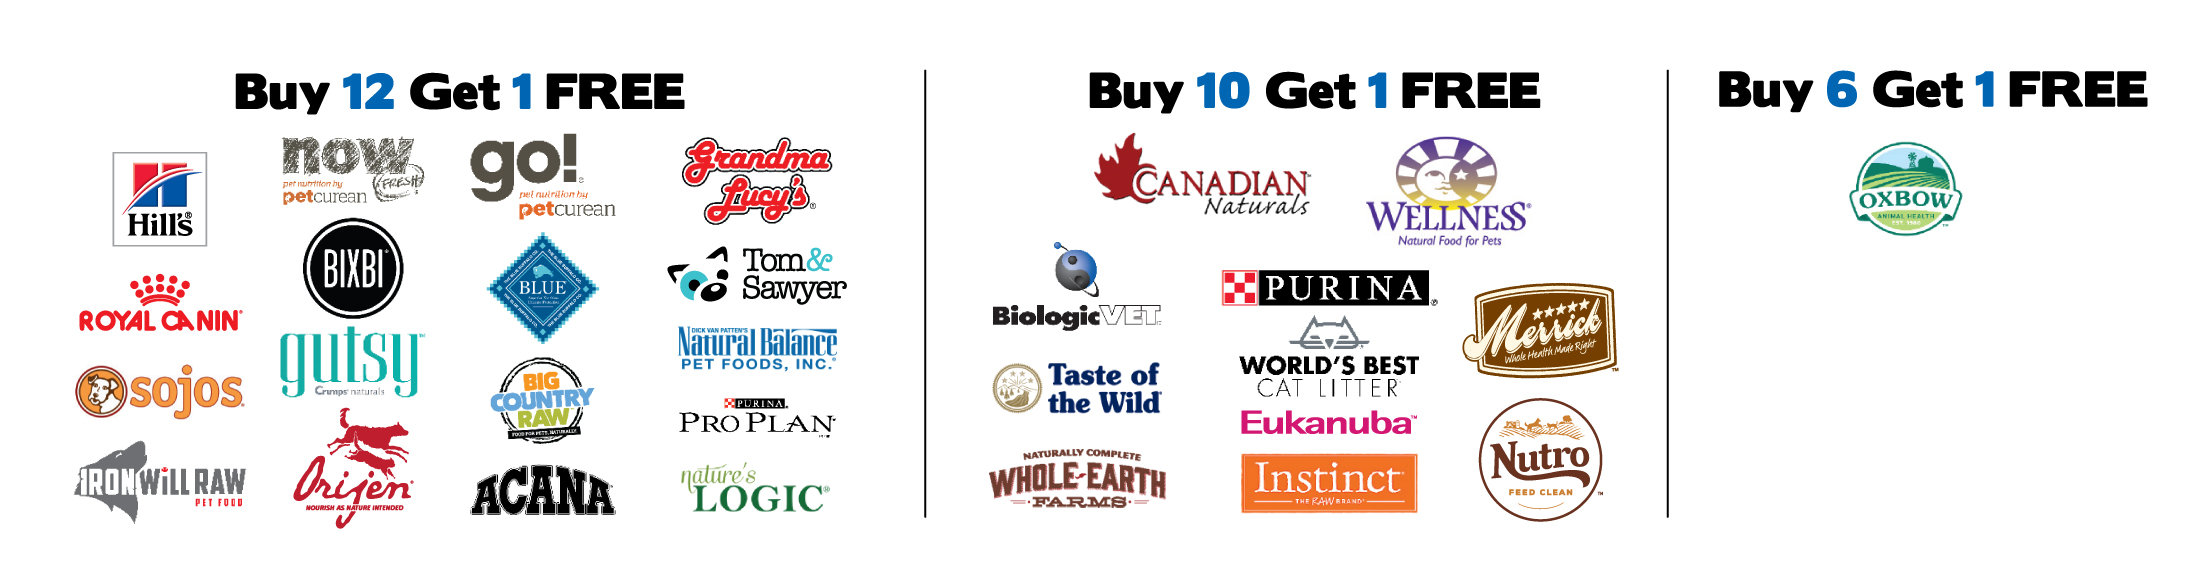 Buy 12 Get 1 Free: Hill's Science Diet, Bixbi, Go! Grandma Lucy's, Royal Canin, NOW Fresh, Tom & Sawyer, Natural Balance, Orijen, Acana, Pro Plan, Sojos (excluding Simple Remedy), Iron Will Raw (excluding meal deals), Big Country Raw (4lbs boxes, 6lbs totes, and 12lbs Mini Grab & Go Only), Crumps' Naturals (Gutsy), Nature's Logic.  Buy 10 Get 1 Free: Canadian Naturals, Wellness, Blue Buffalo, Biologic, Purina, Merrick, Taste of the Wild, World's Best, Eukanuba, Whole Earth Farms, Instinct, Nutro. Buy 6 Get 1 Free: Oxbow.